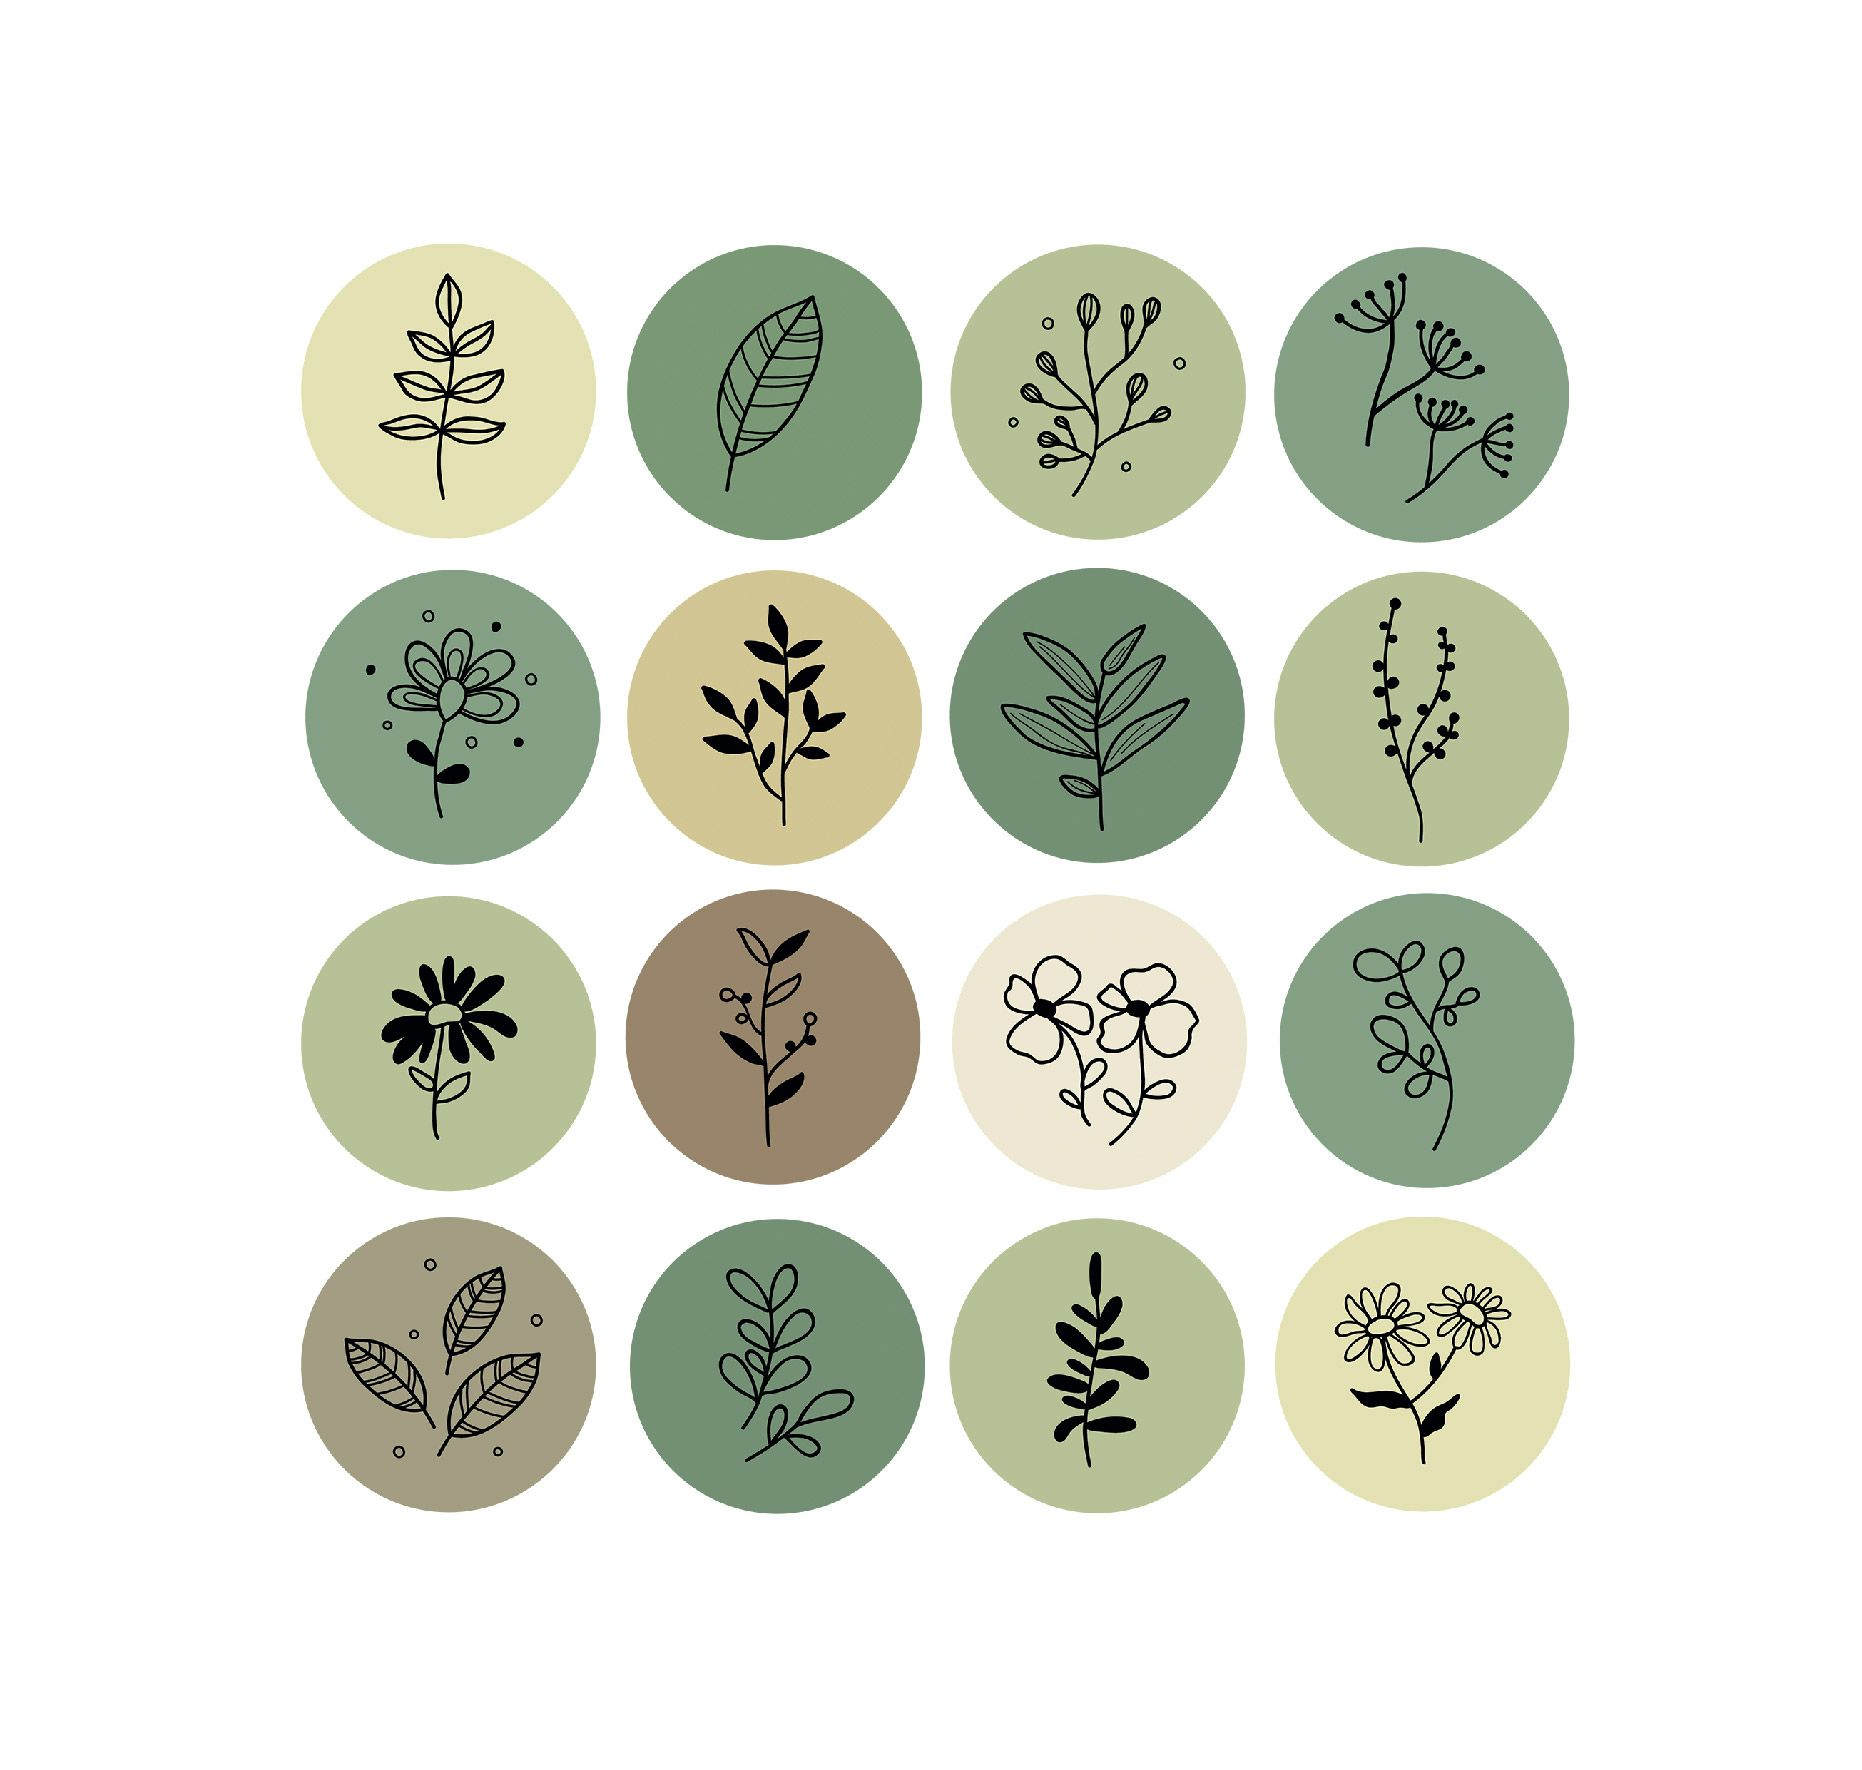 Free Plants Icons Template In 2020 Plant Icon Journal Stickers Bullet Journal Stickers Free icons of plant in various design styles for web, mobile, and graphic design projects. plant icon journal stickers